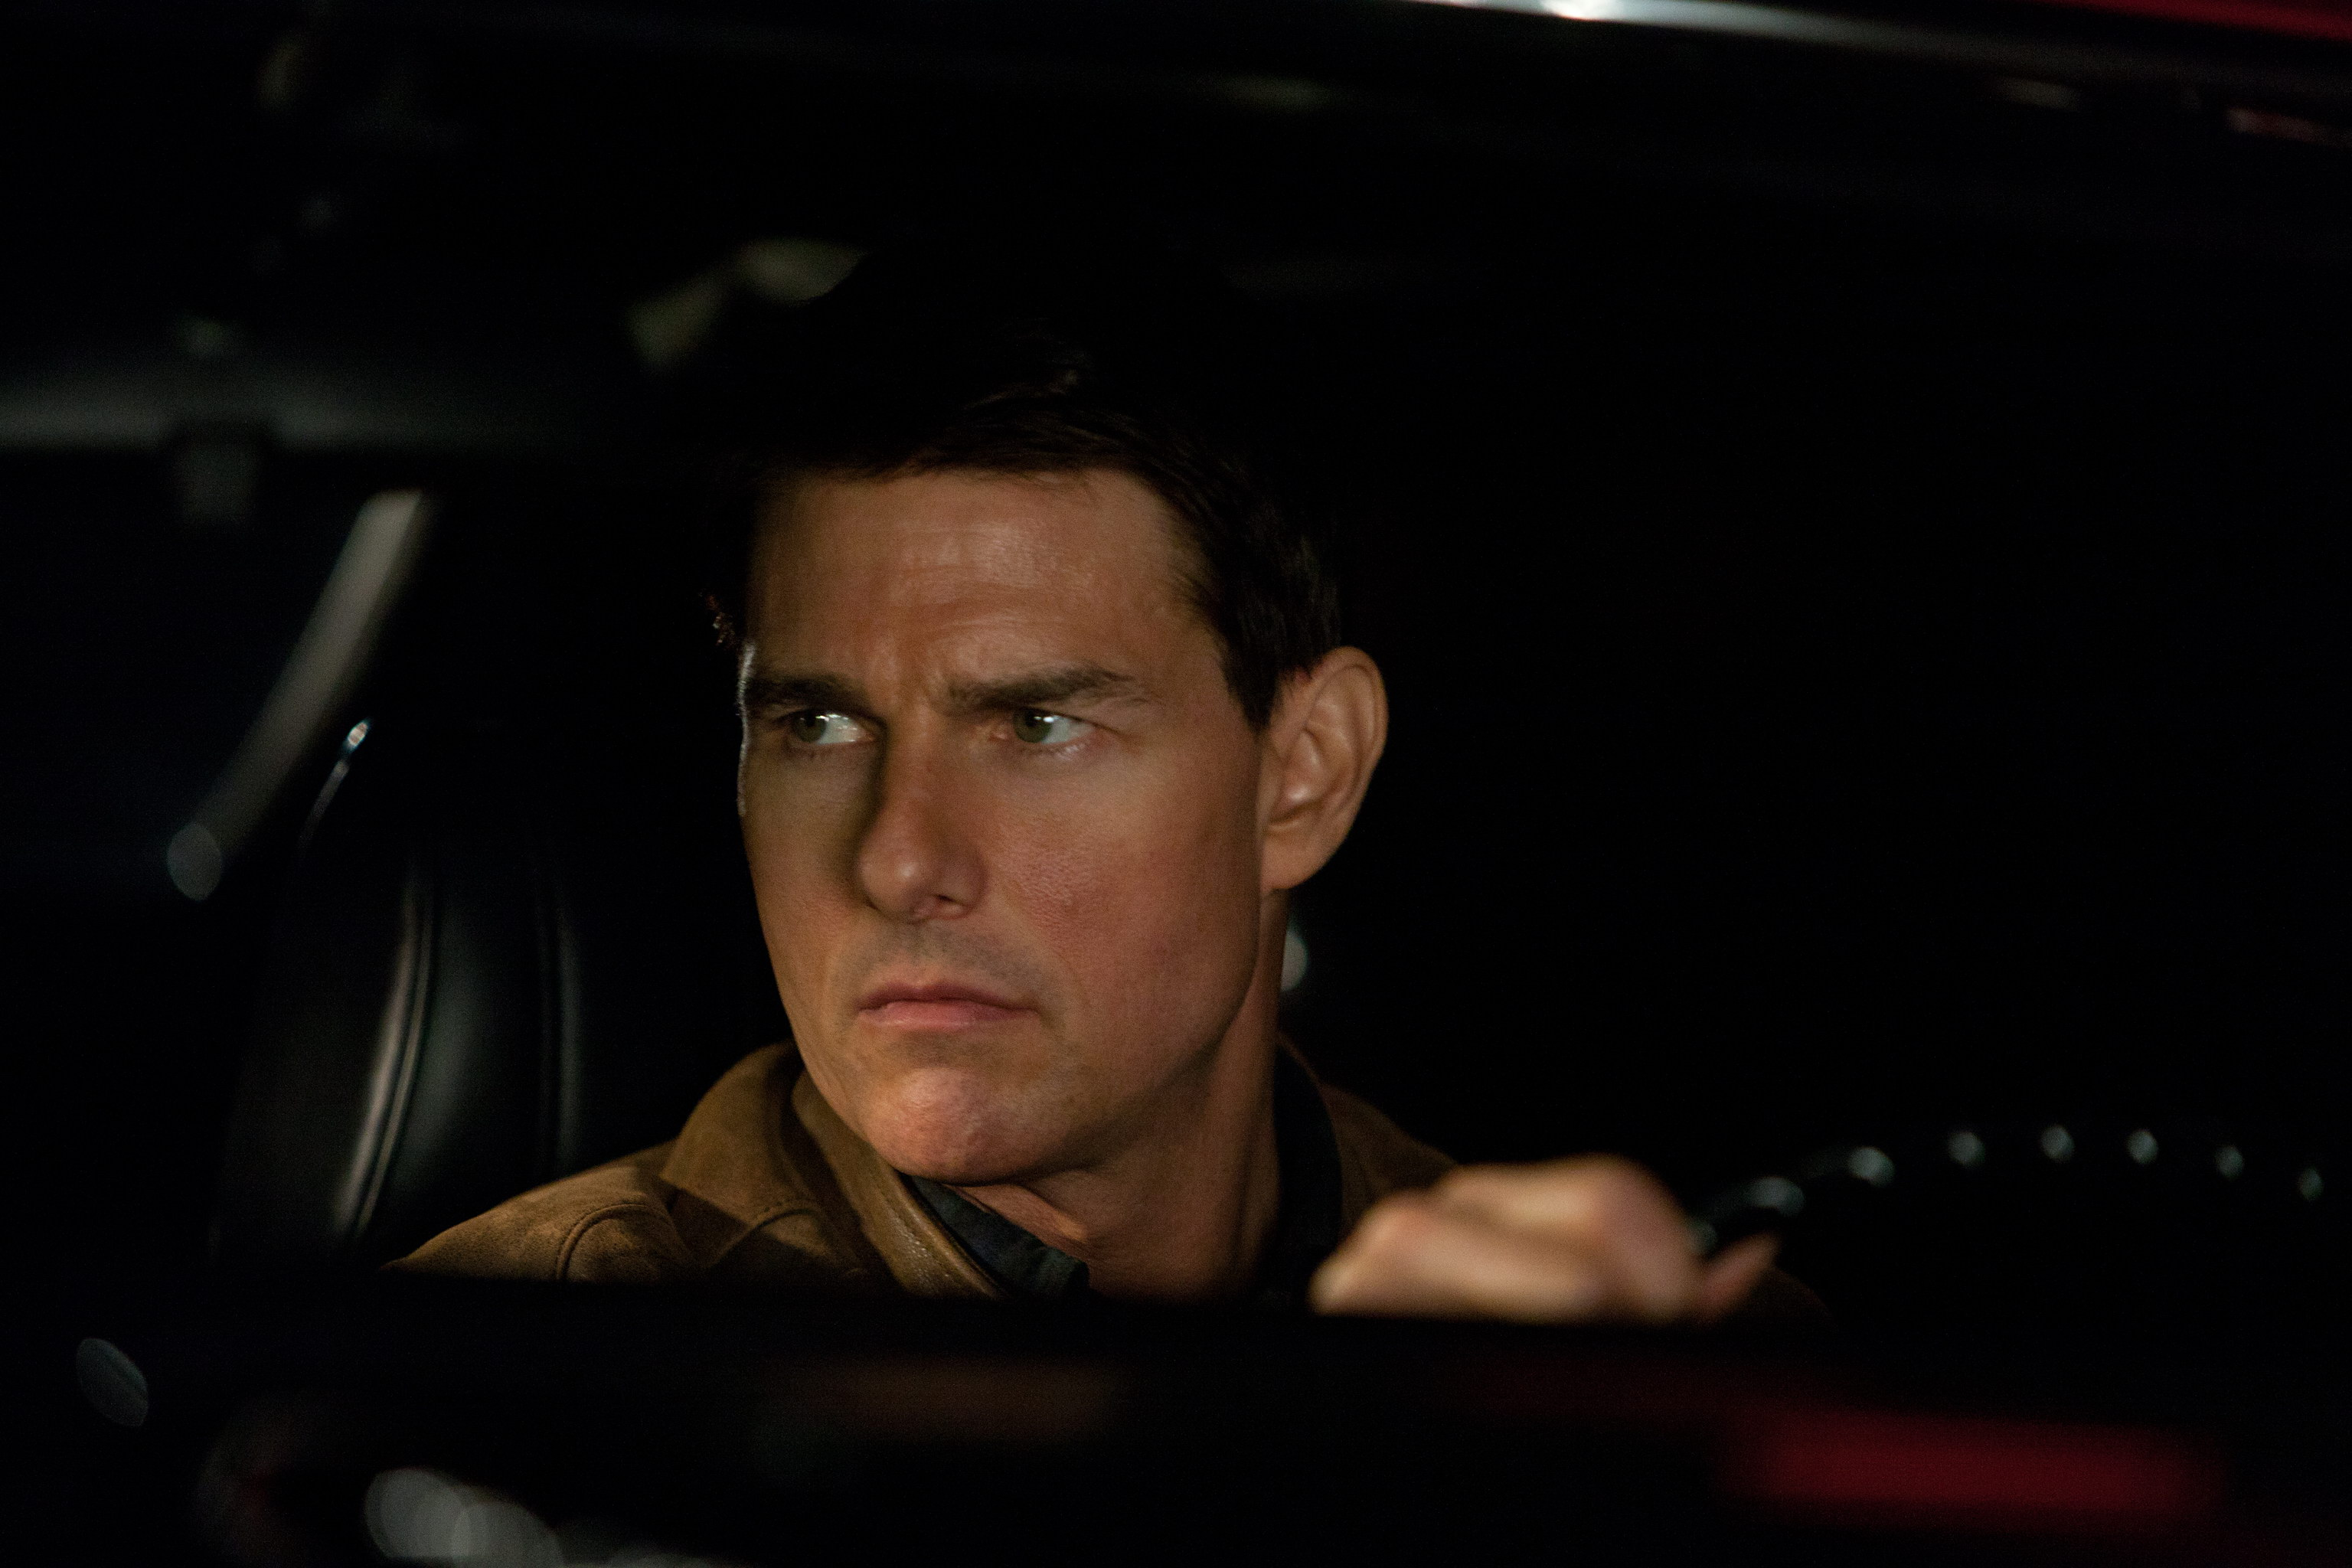 Tom Cruise images Jack Reacher HD wallpaper and background photos 3072x2048